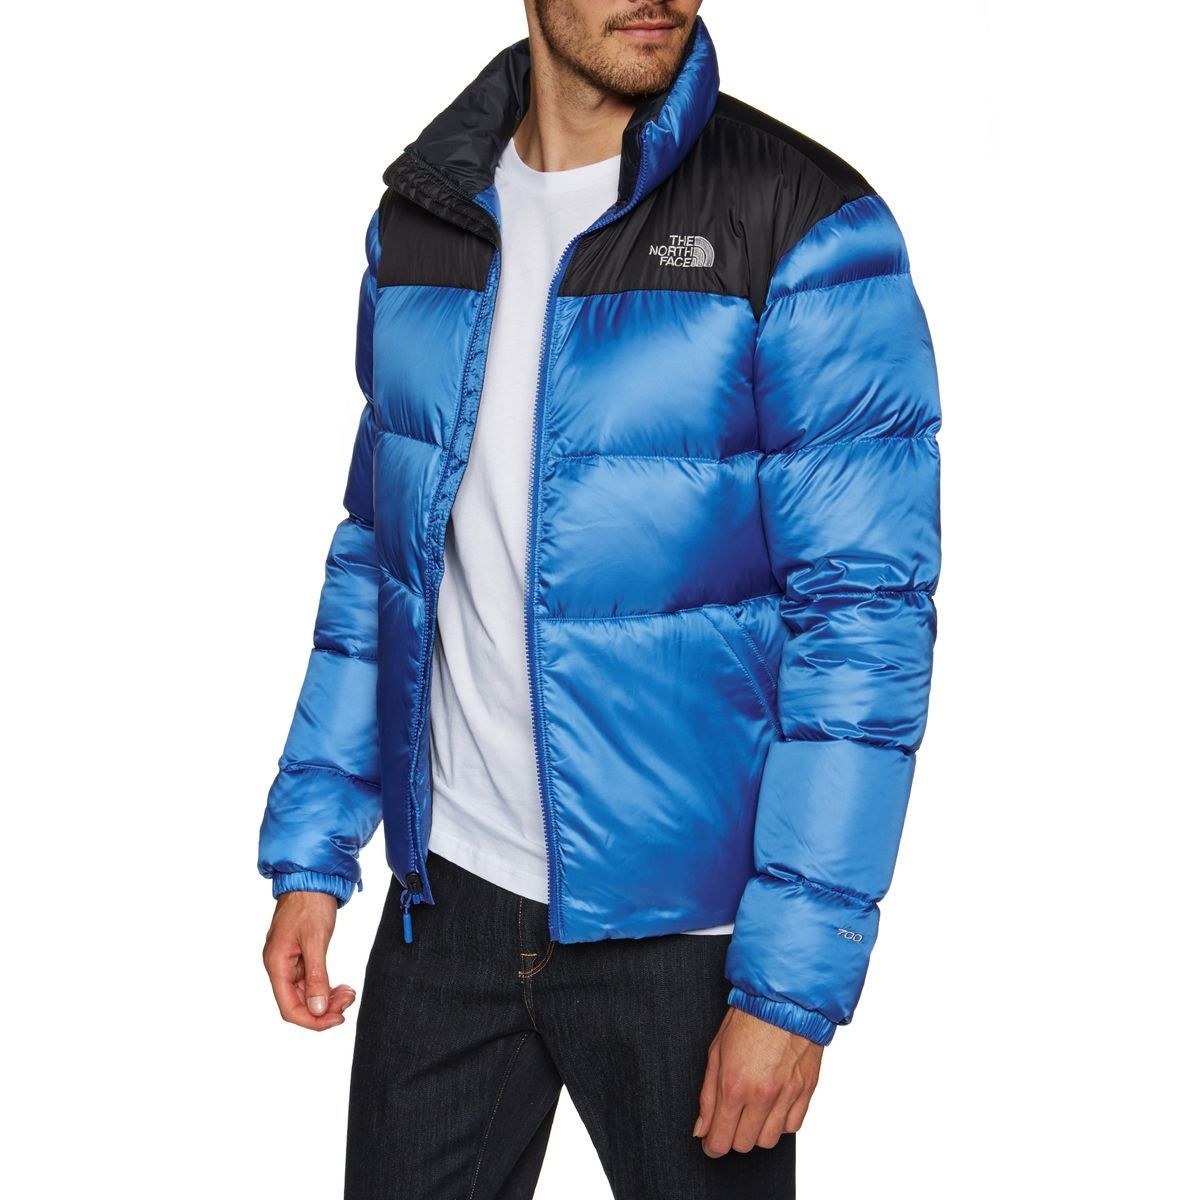 4609ba184 North Face Nuptse III Down Jacket available from Blackleaf